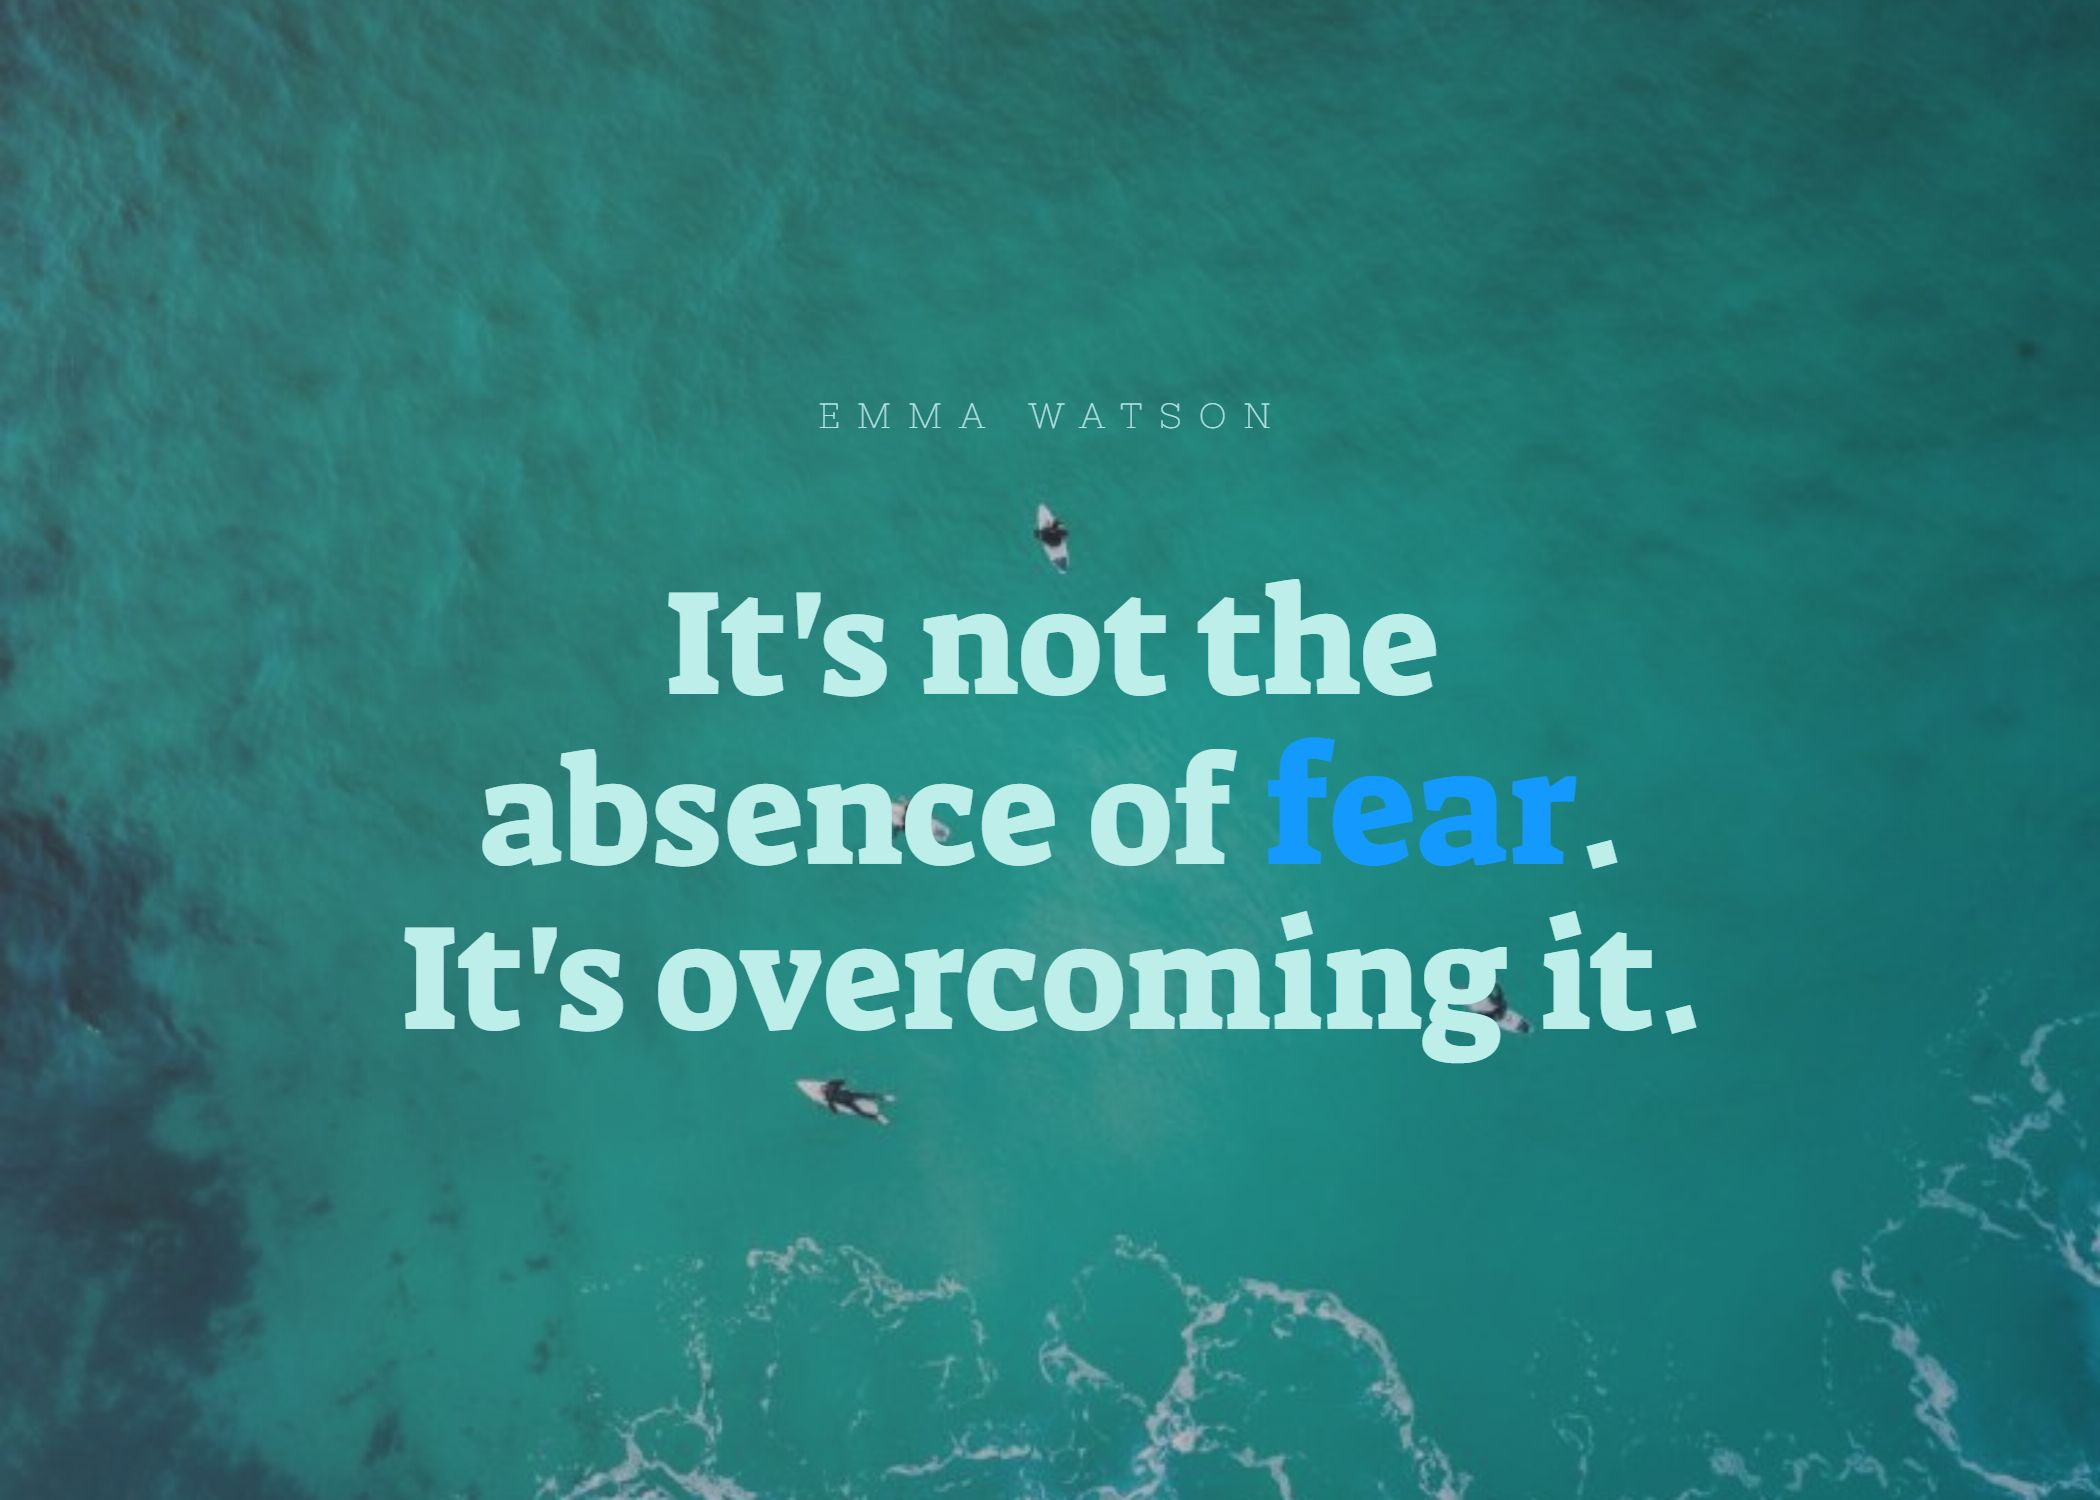 Quotes image of It's not the absence of fear. It's overcoming it.